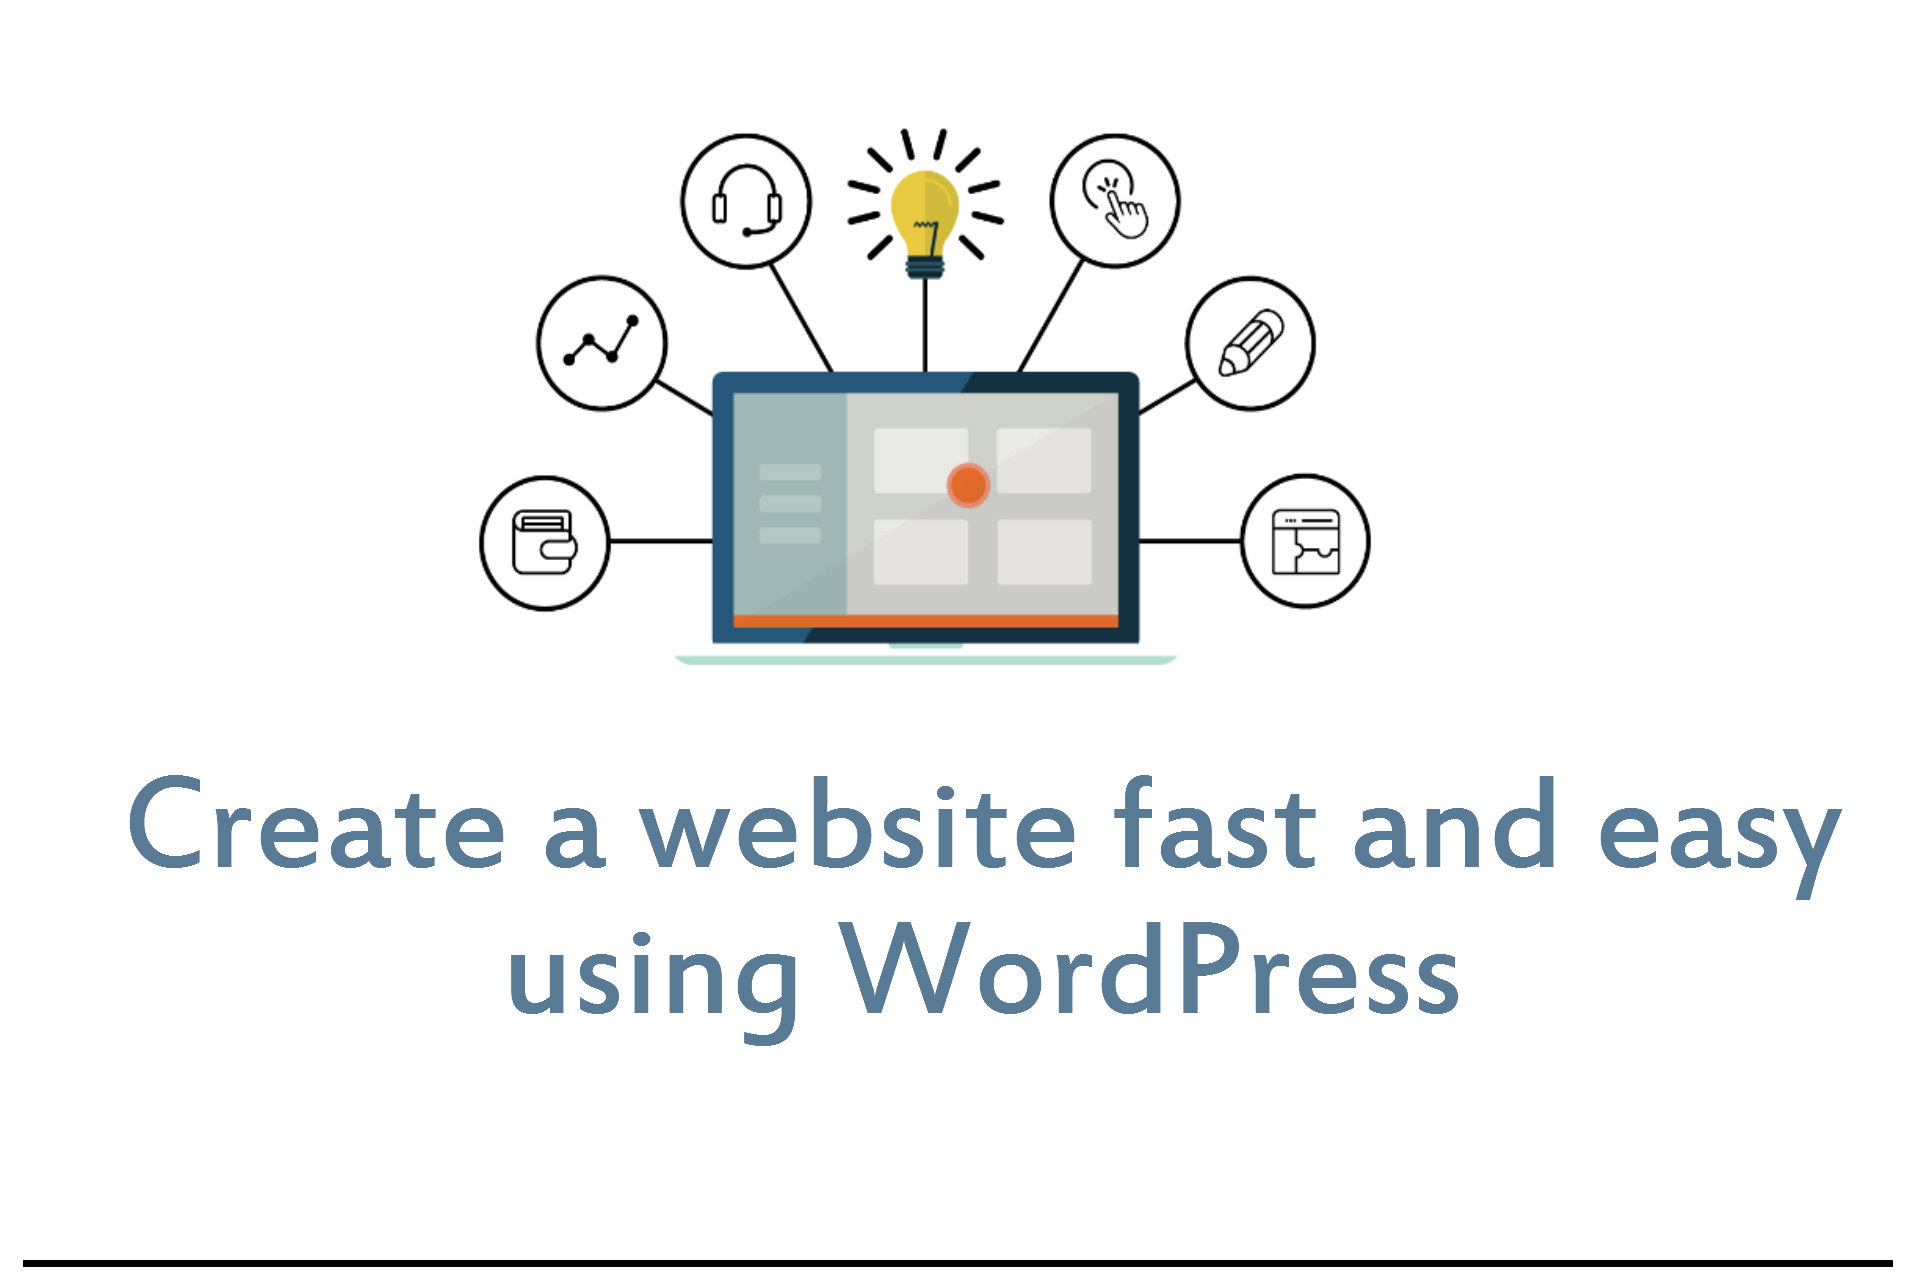 Create a website fast and easy with wordpress